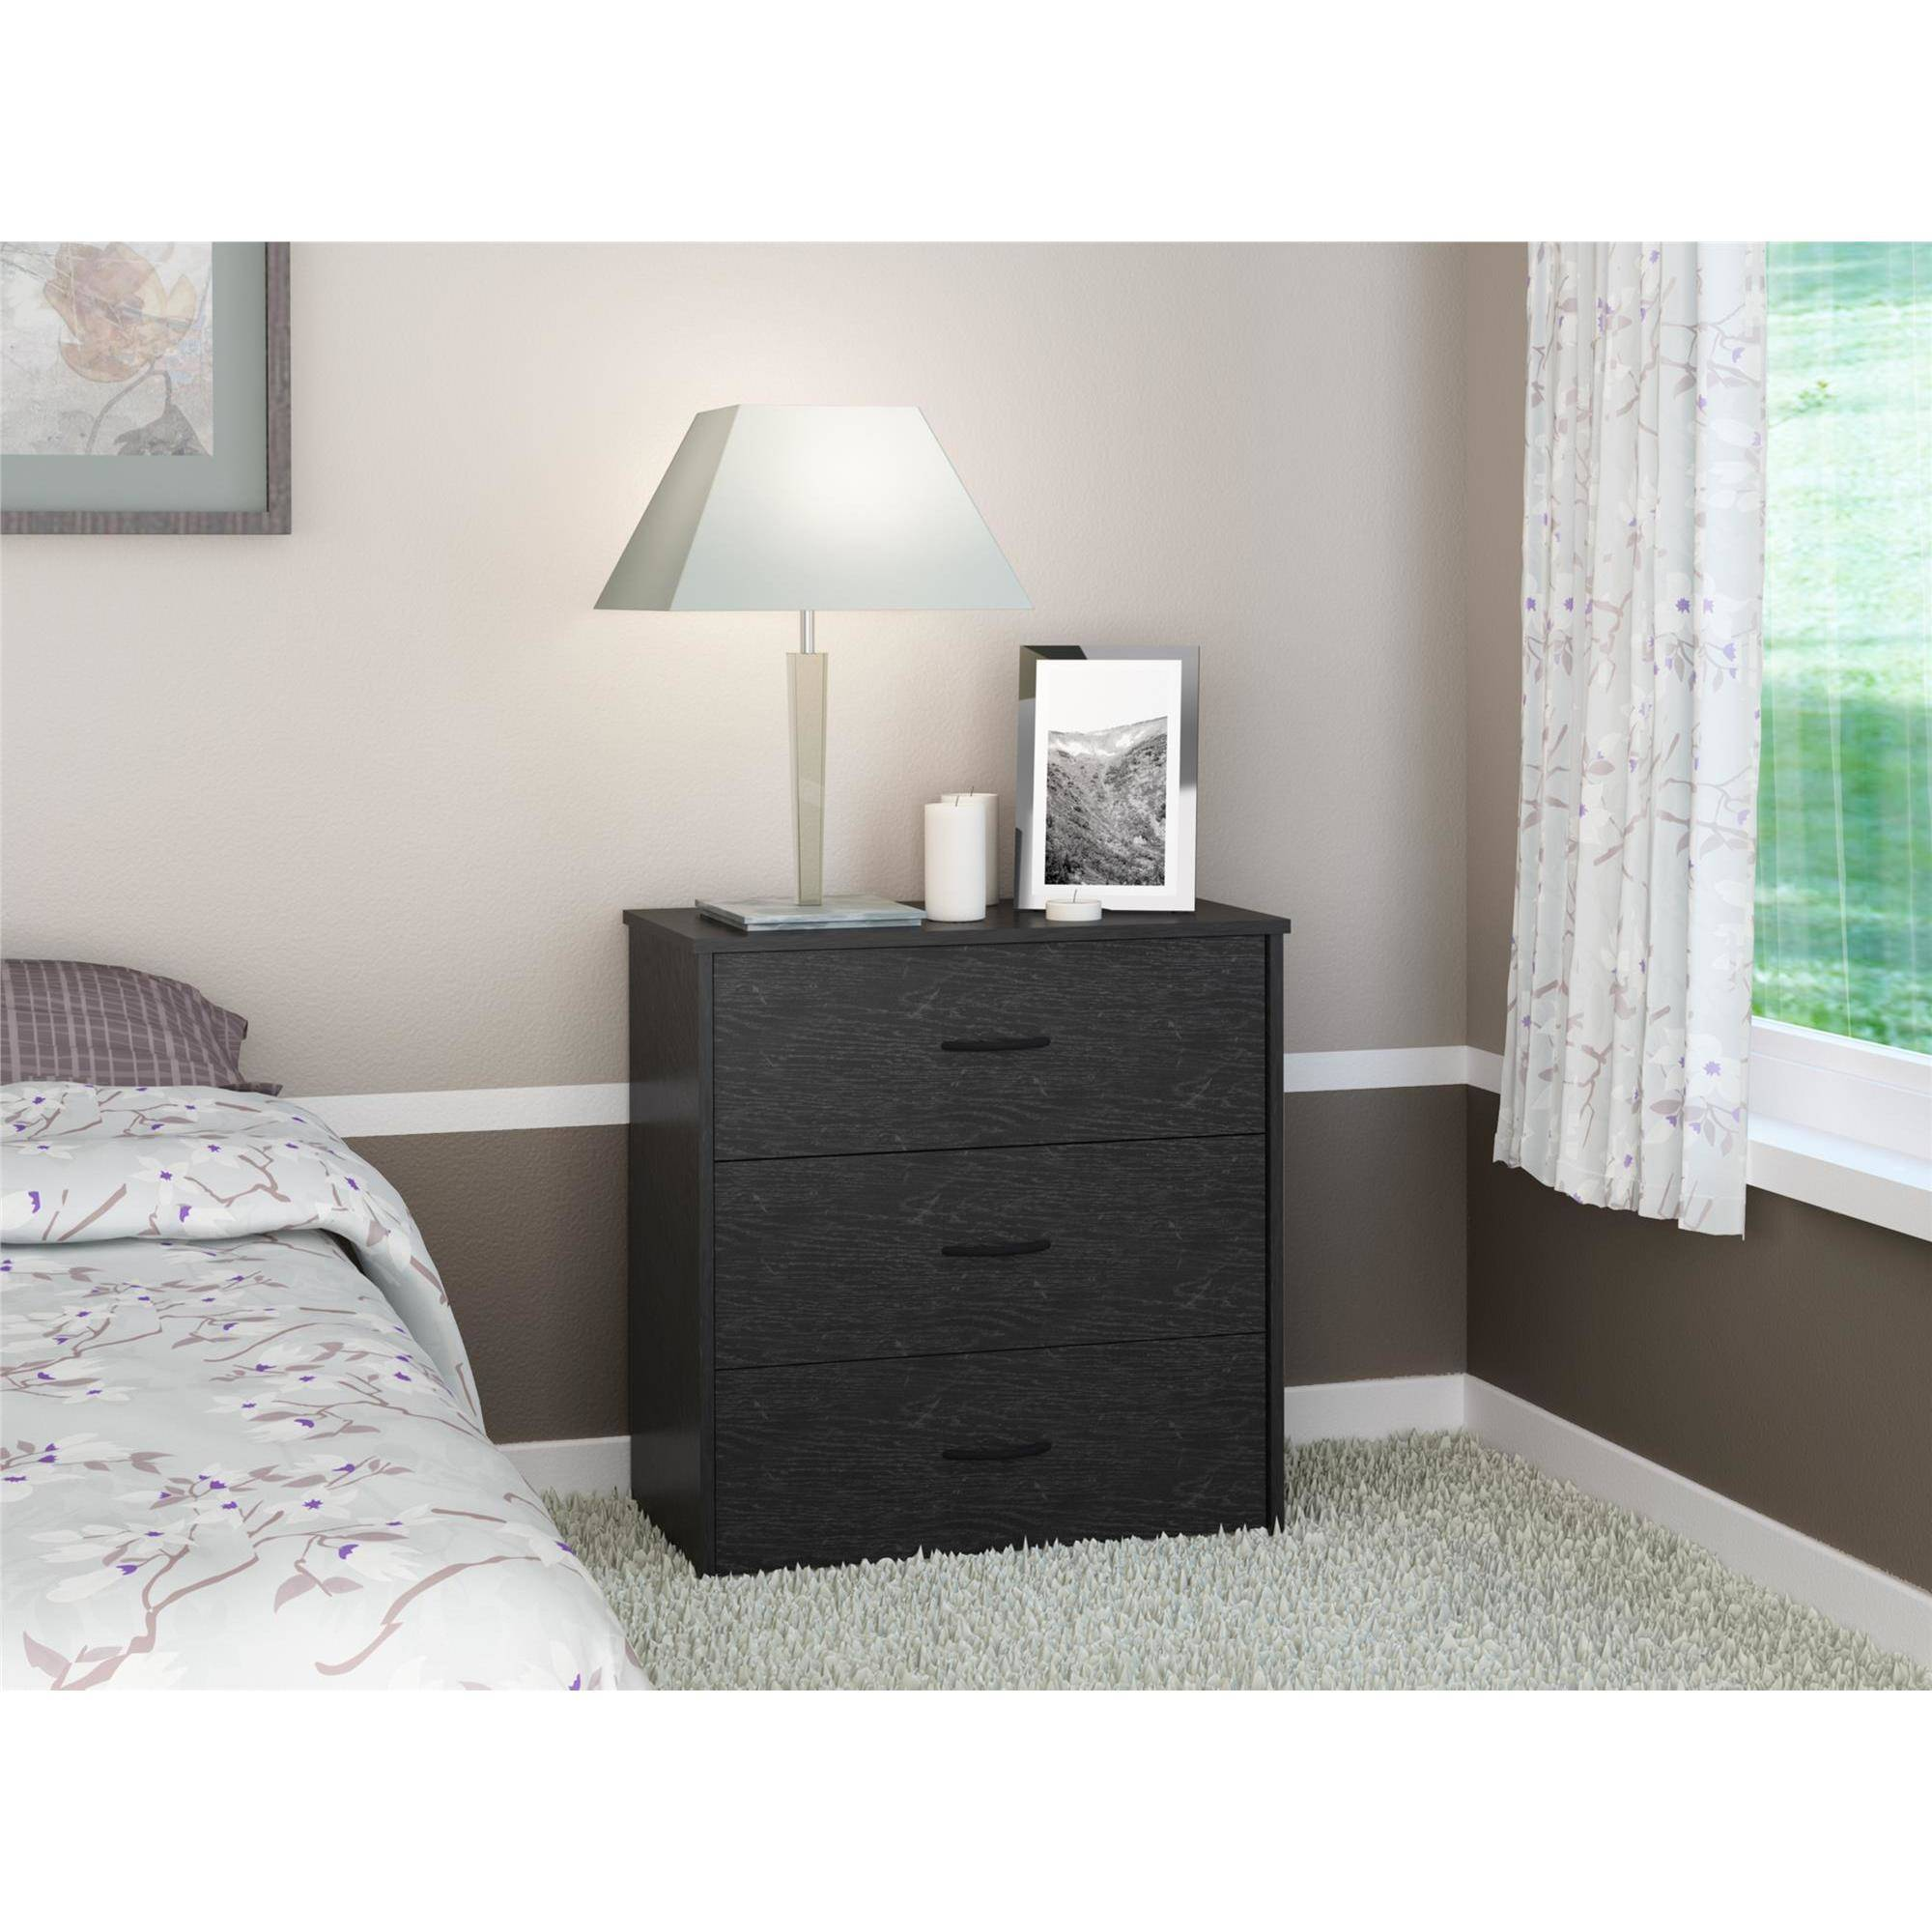 bedroom prepossessing design gallery or ravishing drawer ideas photo picture organization in drawers attachment other furniture new for model